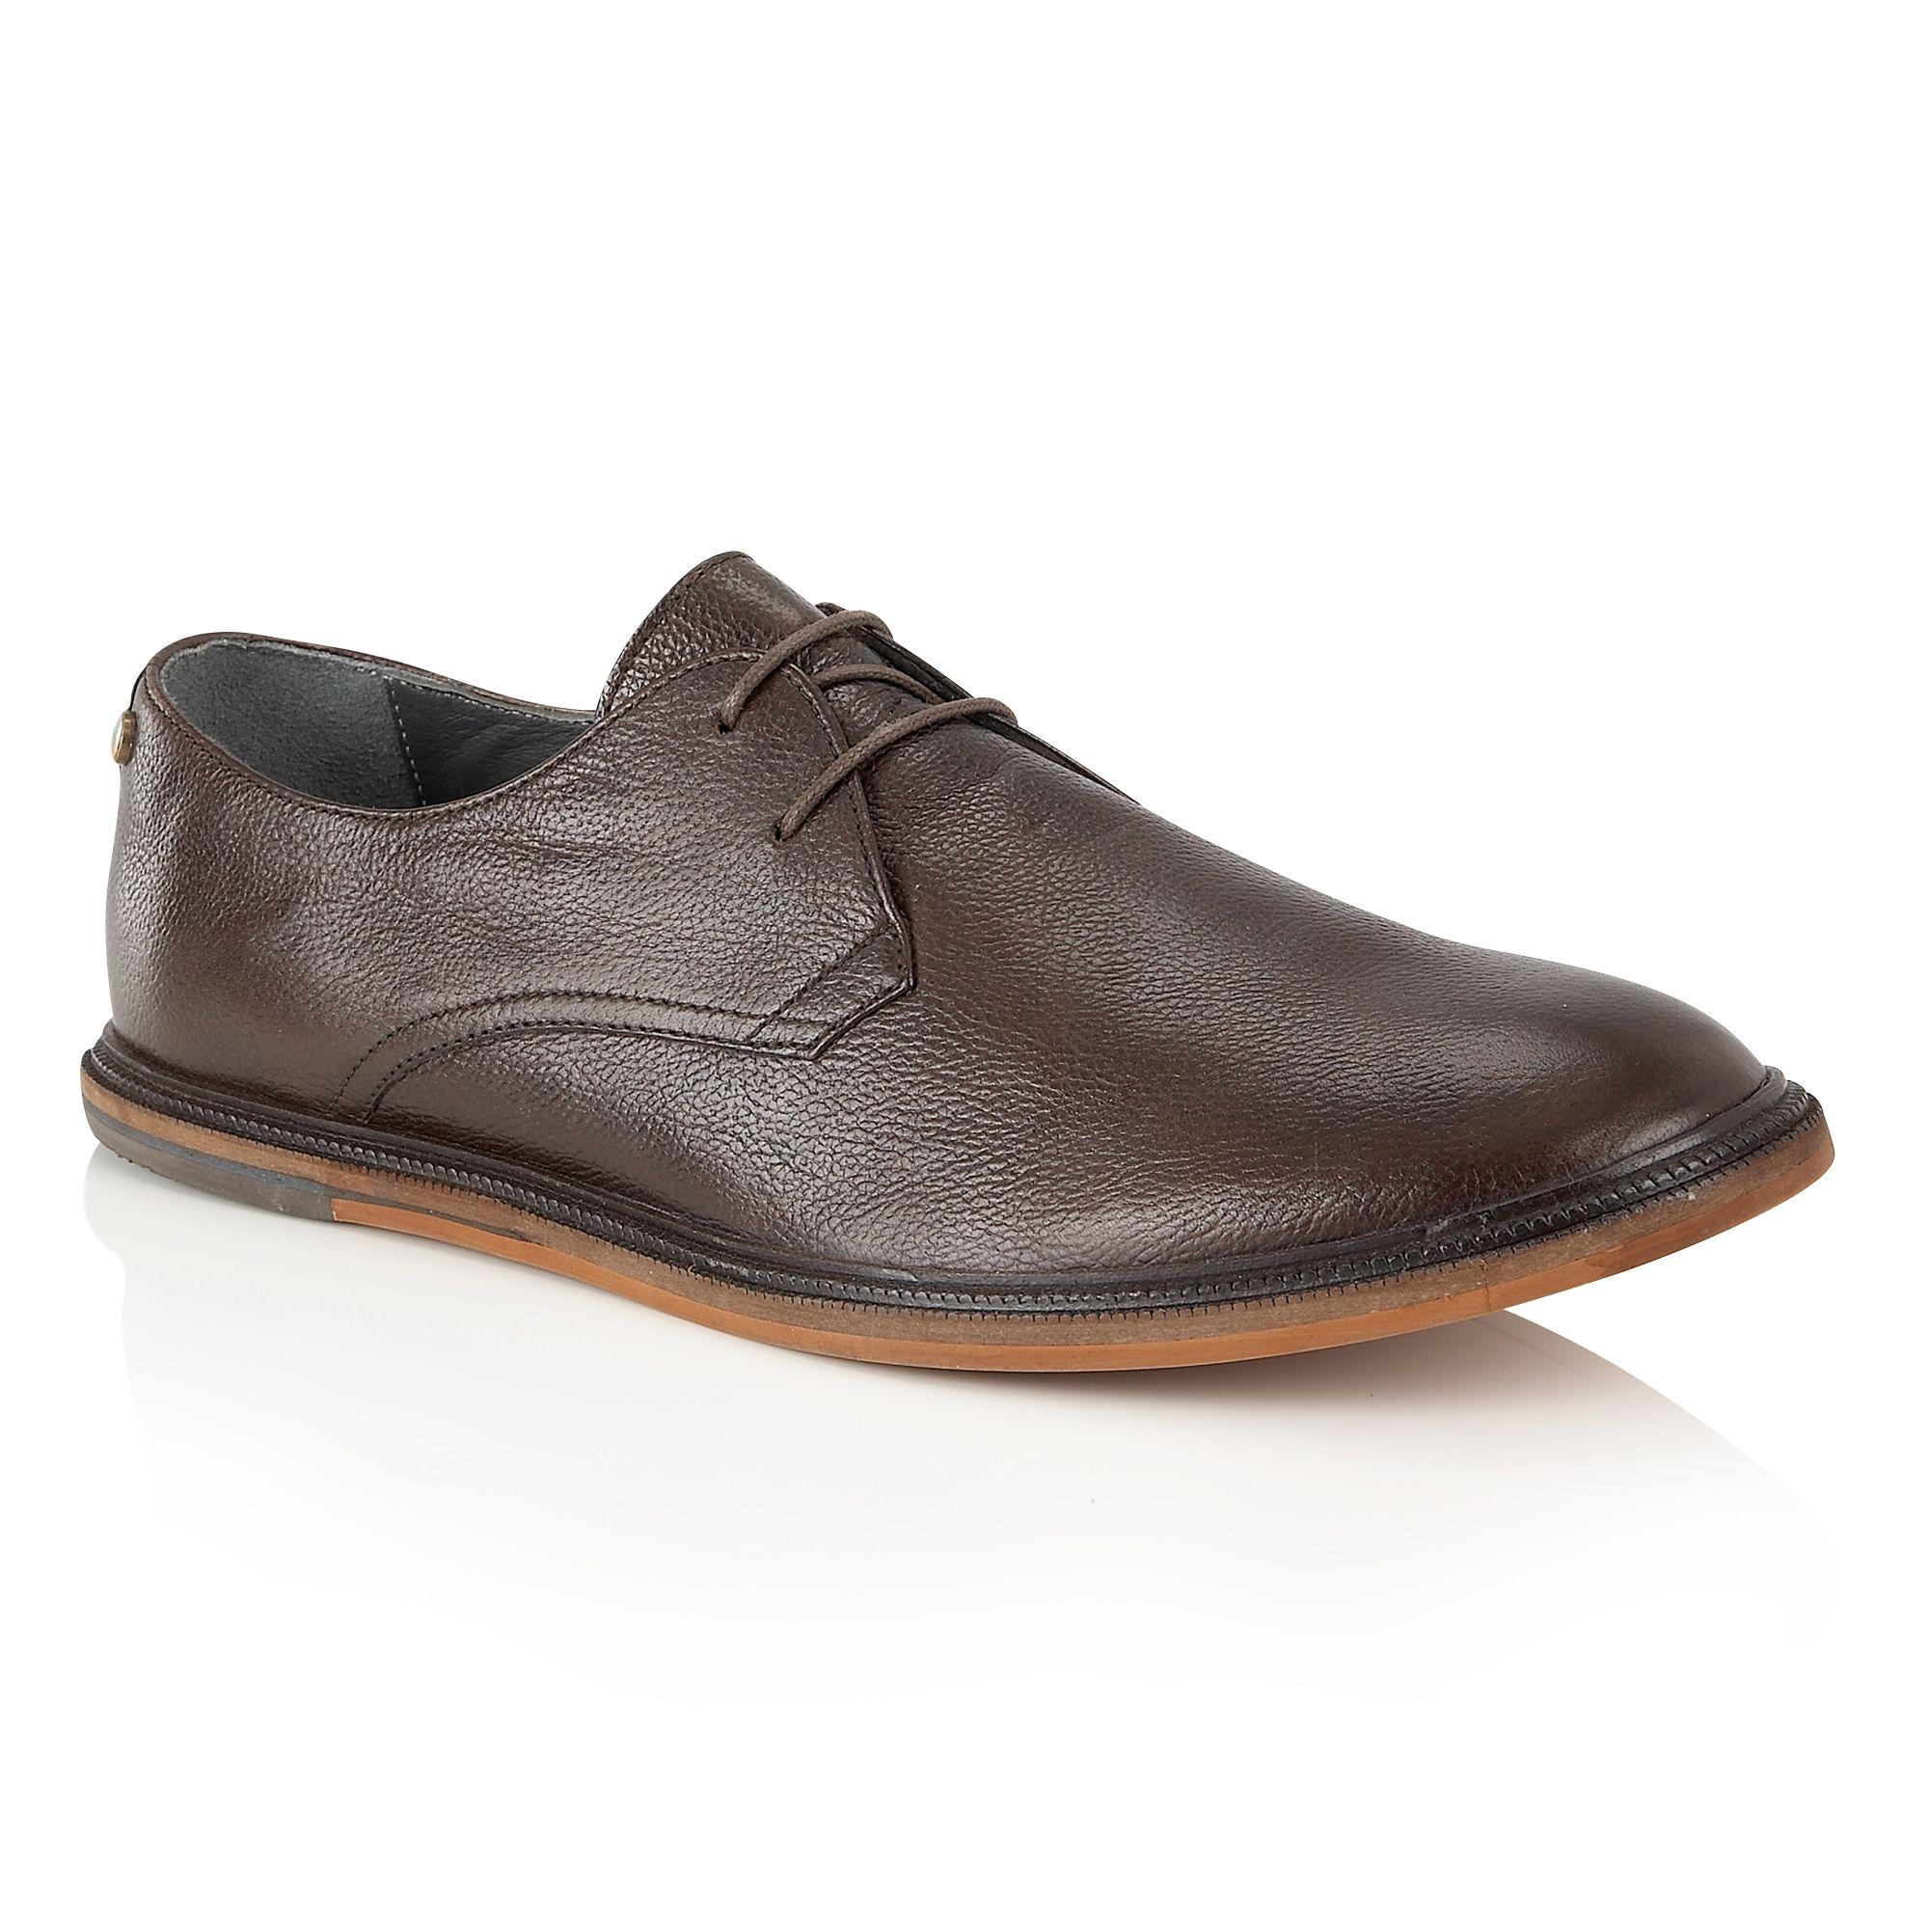 Frank Wright Frank Wright Burley Mens Shoes, Dark Brown